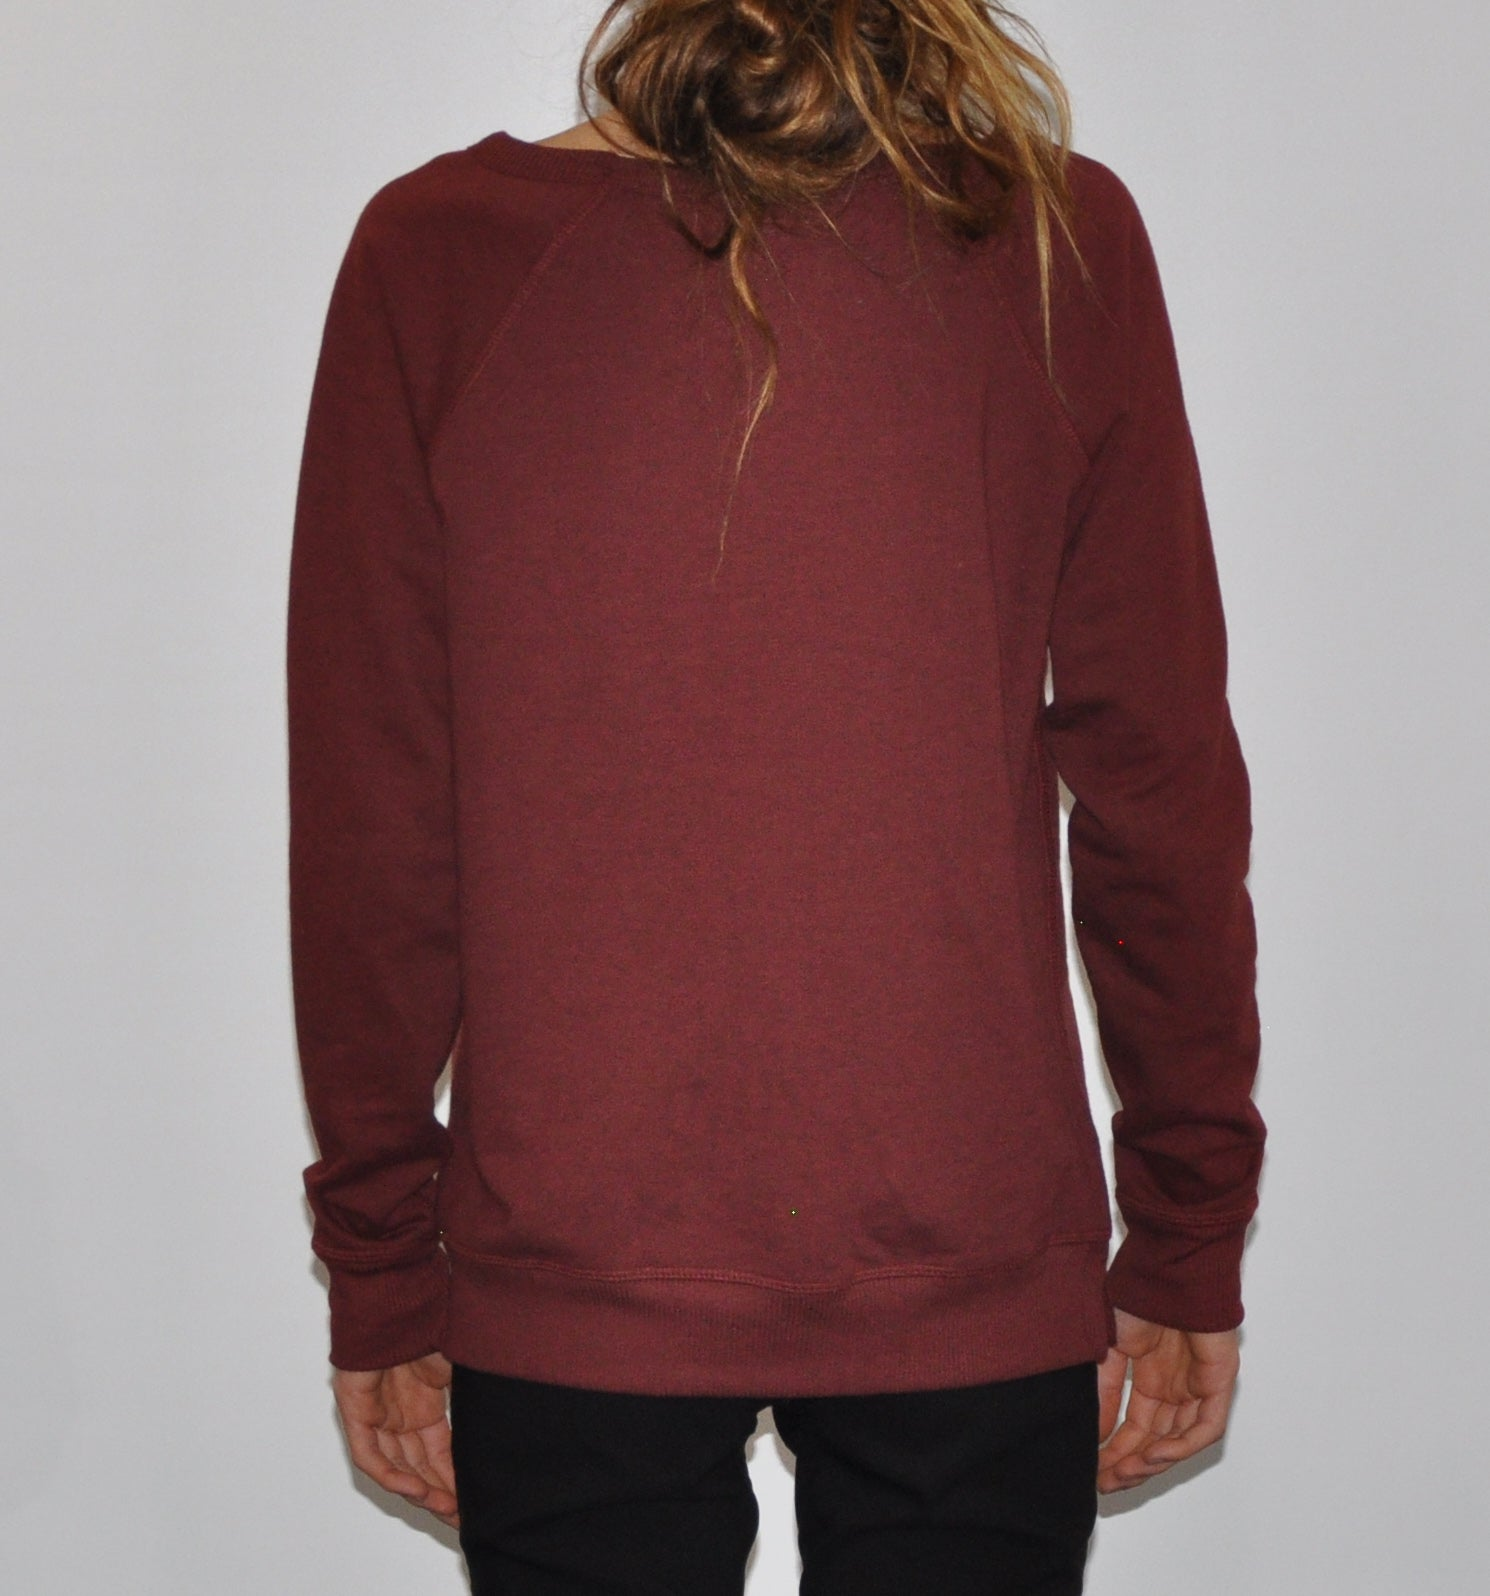 Surf Shack Sweater - Womens - Maroon